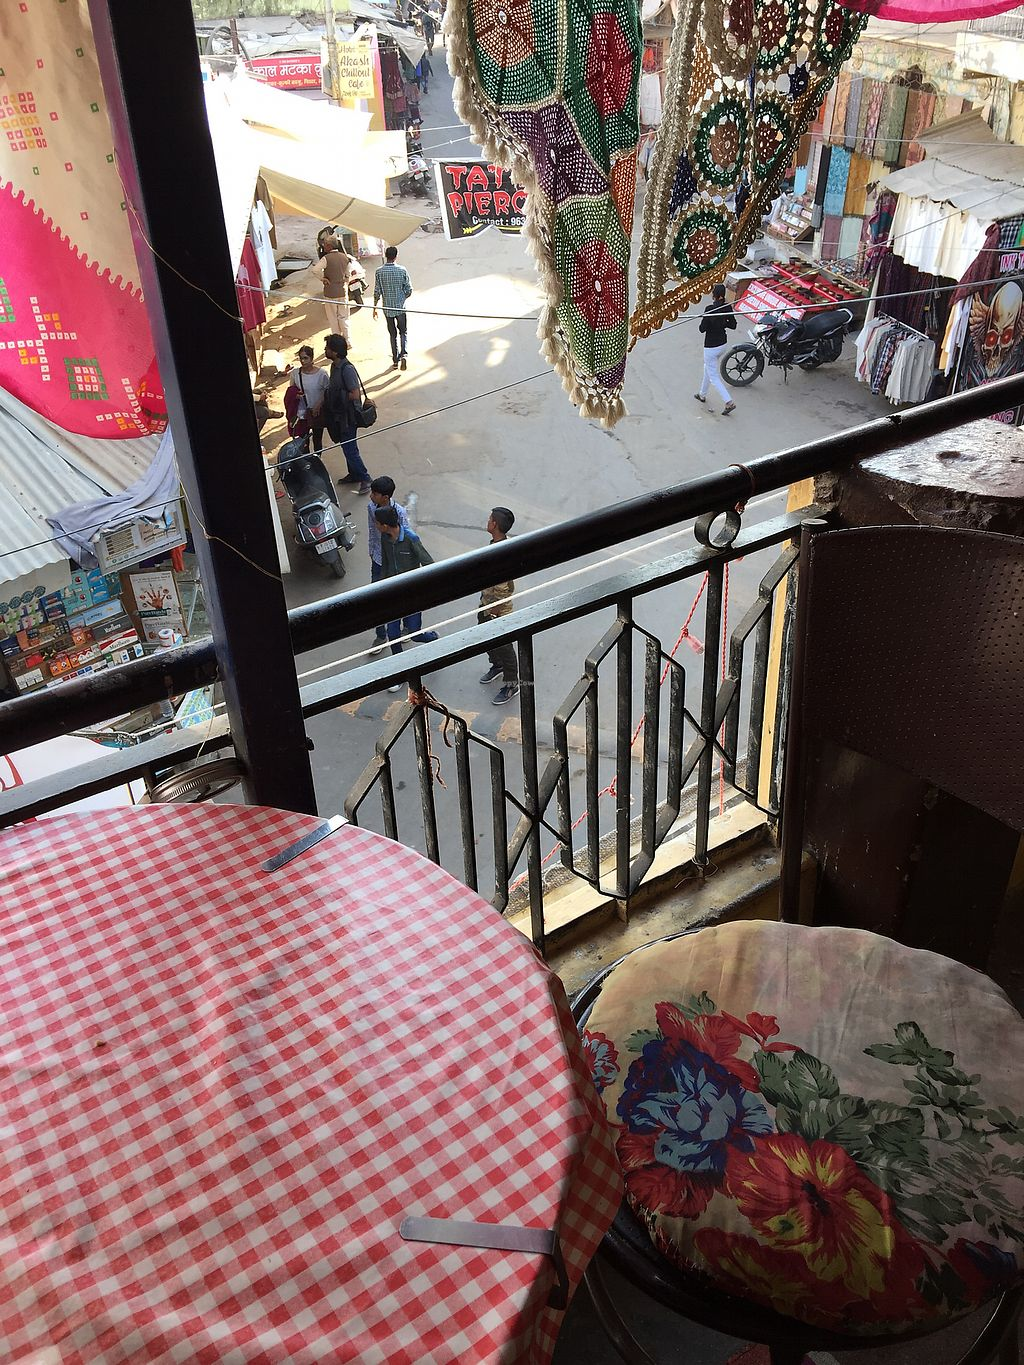 "Photo of The Laughing Buddha Cafe  by <a href=""/members/profile/Gotham"">Gotham</a> <br/>Upstairs <br/> January 28, 2018  - <a href='/contact/abuse/image/107961/352130'>Report</a>"